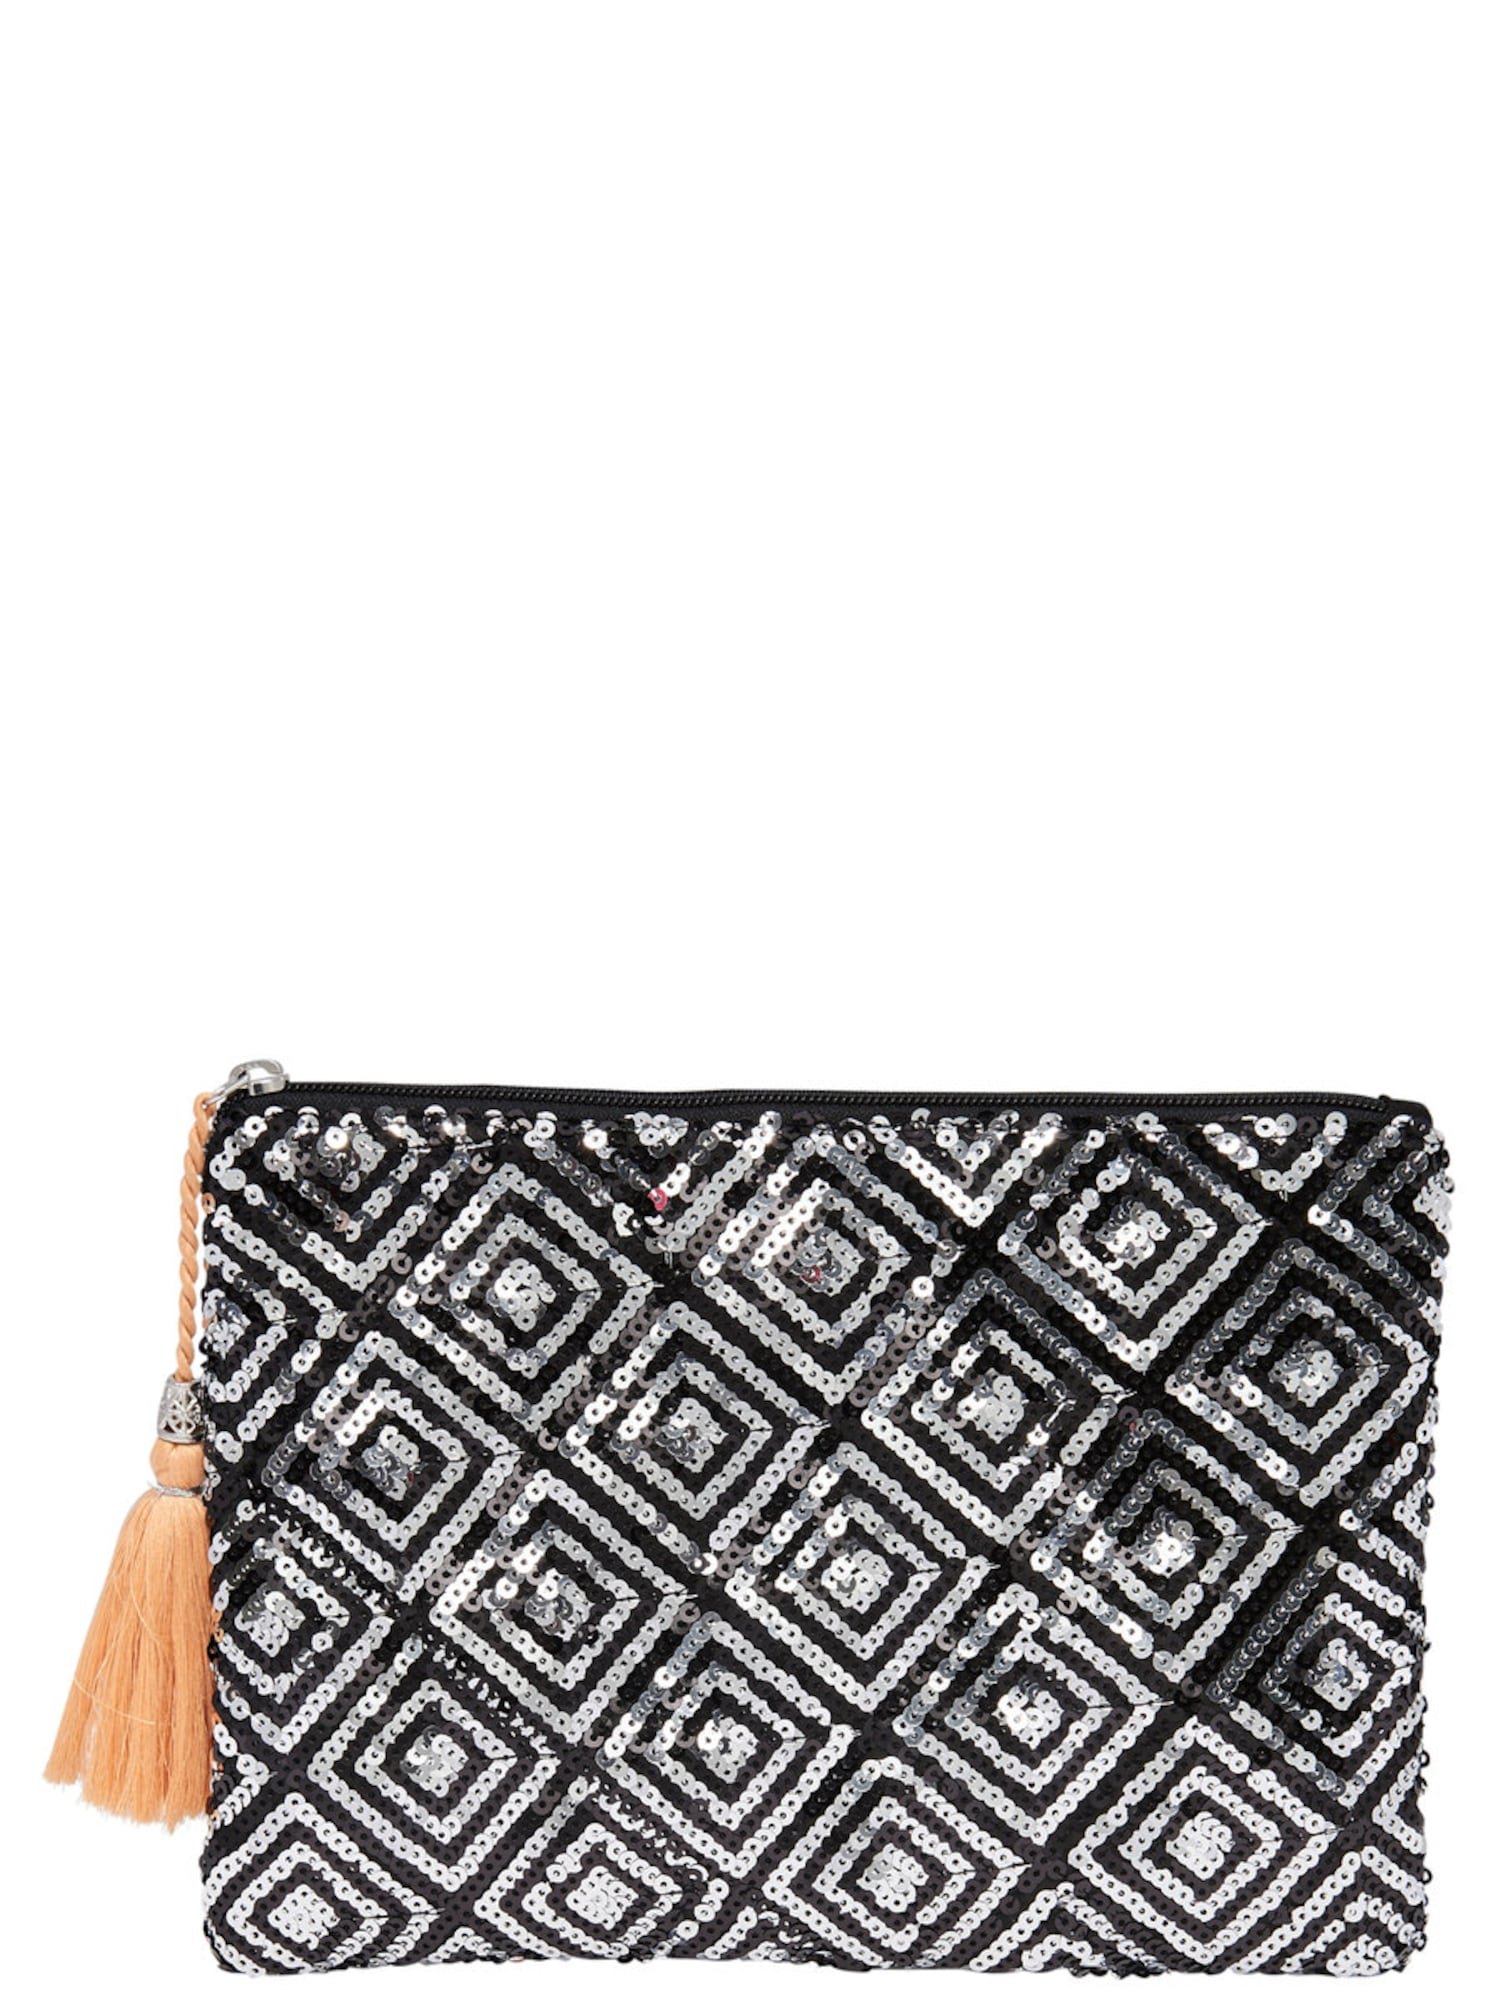 ONLY, Dames Clutch, zwart